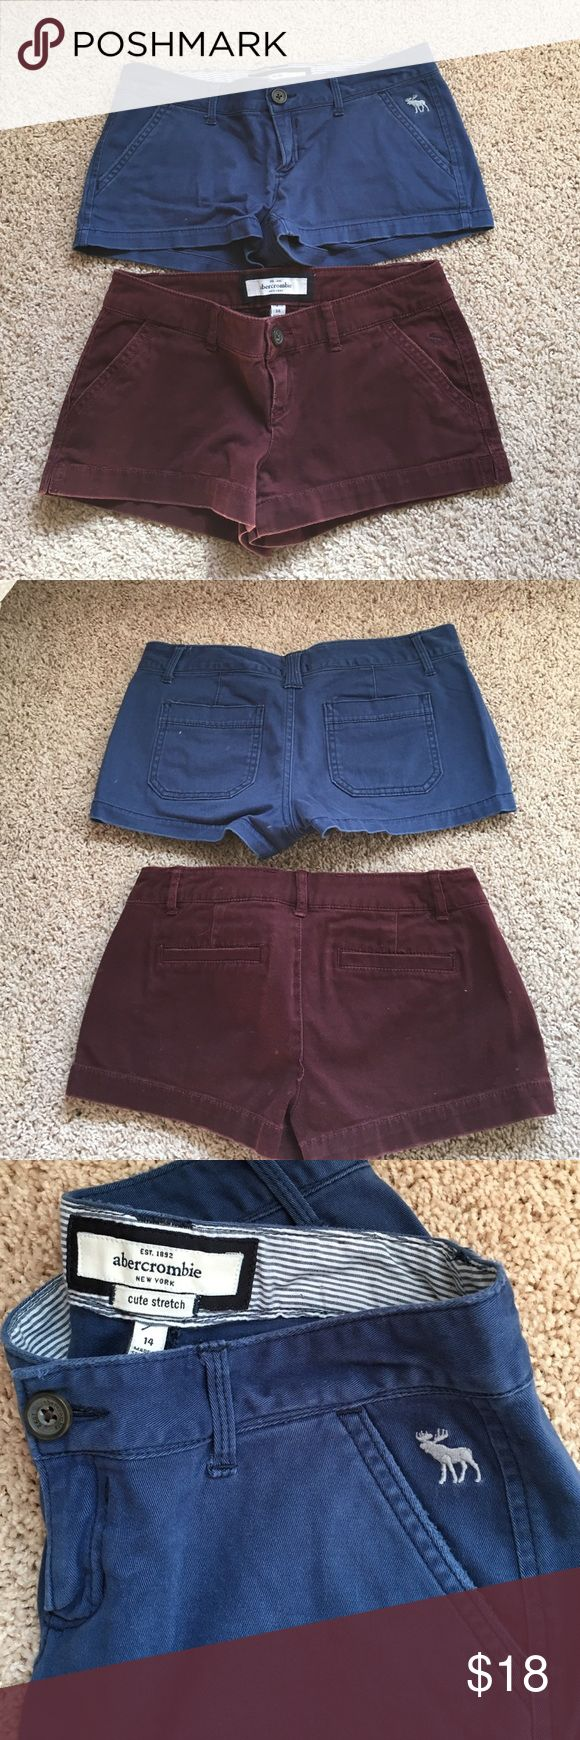 Abercrombie girls shorts sz14 ladies 00 Abercrombie girls cute stretch shorts size 14 or ladies 00. Blue and maroon. Good condition selling as a bundle willing to separate. abercrombie kids Shorts